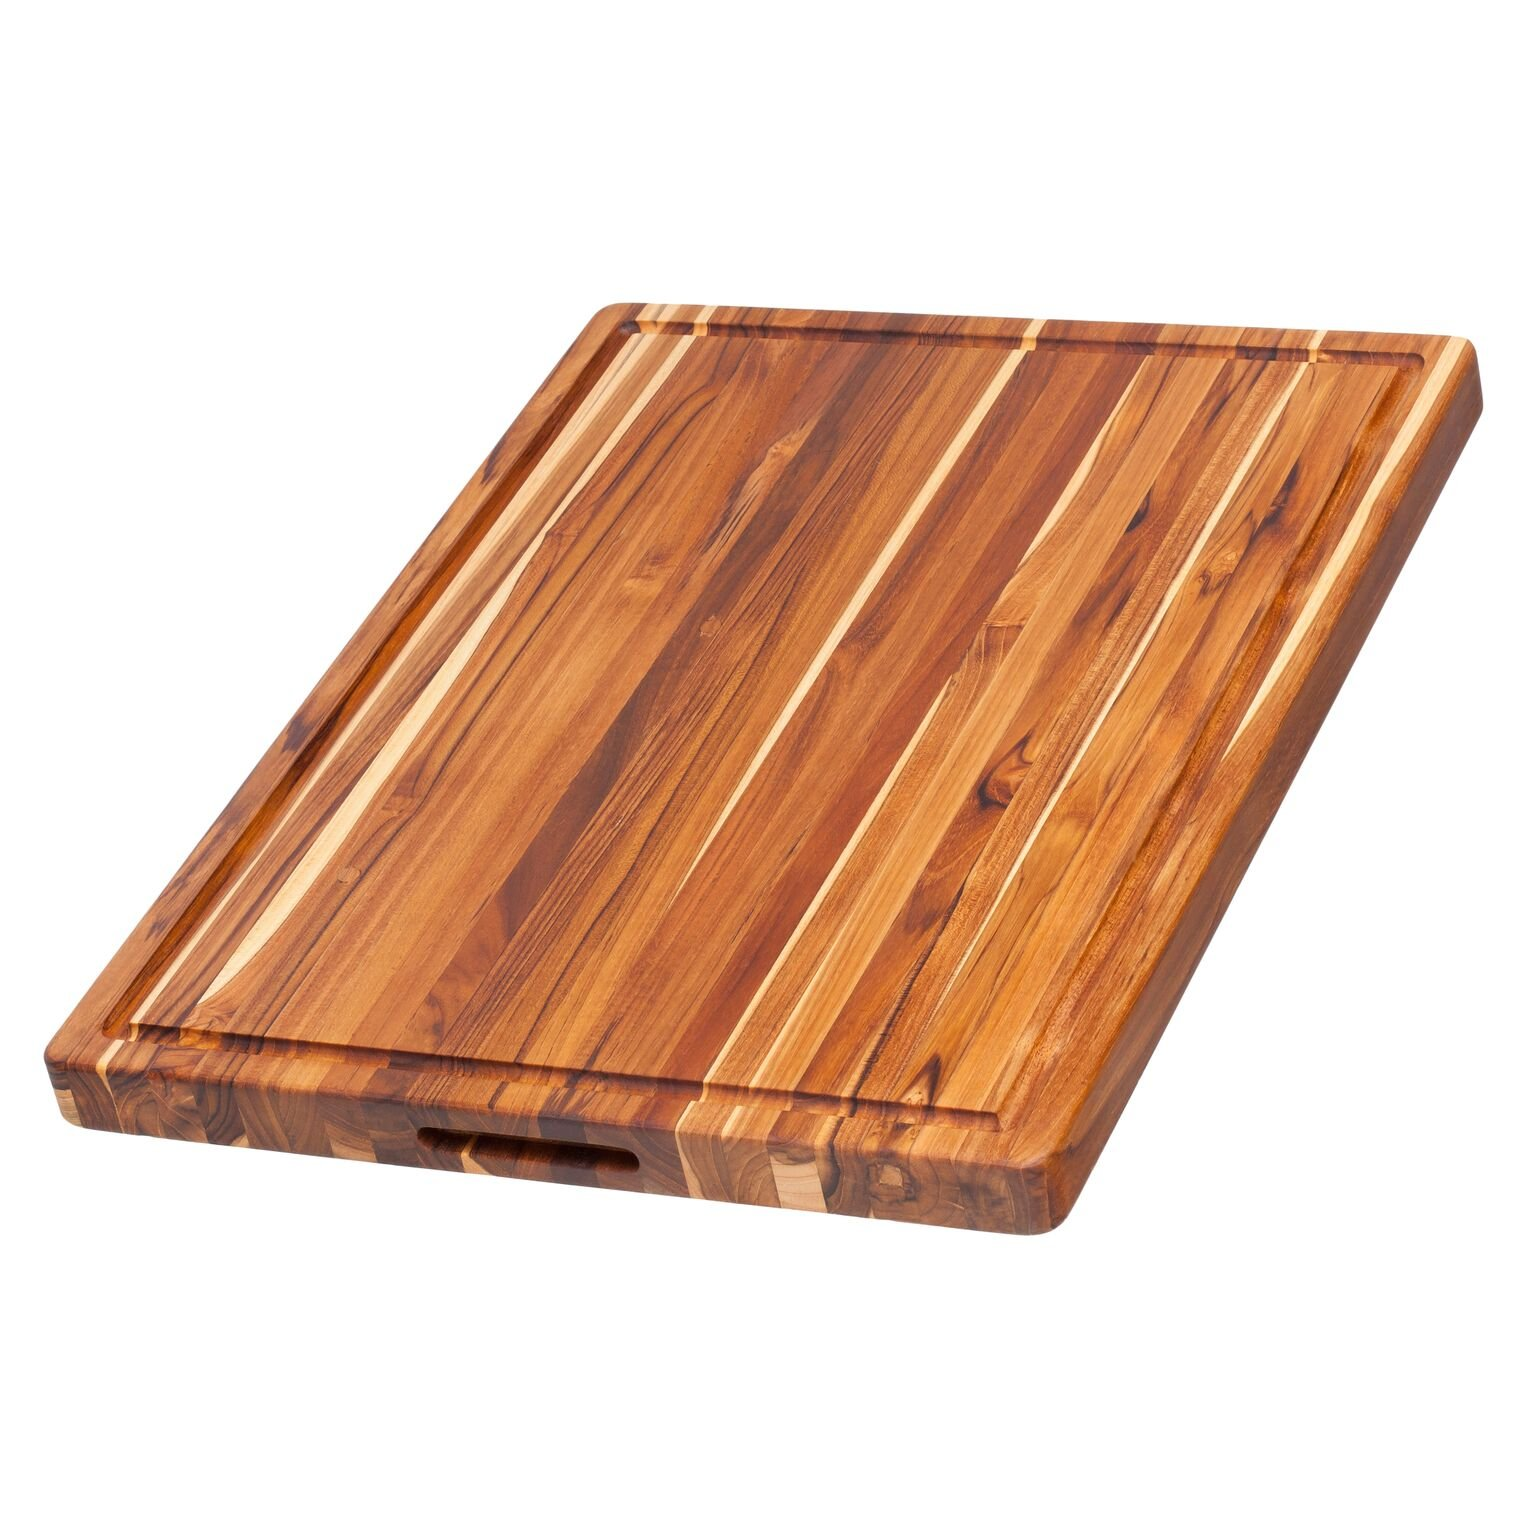 Teak Cutting Board - Rectangle Board With Hand Grip And Juice Canal (20 x 15 x 1.5 in.) - By Teakhaus